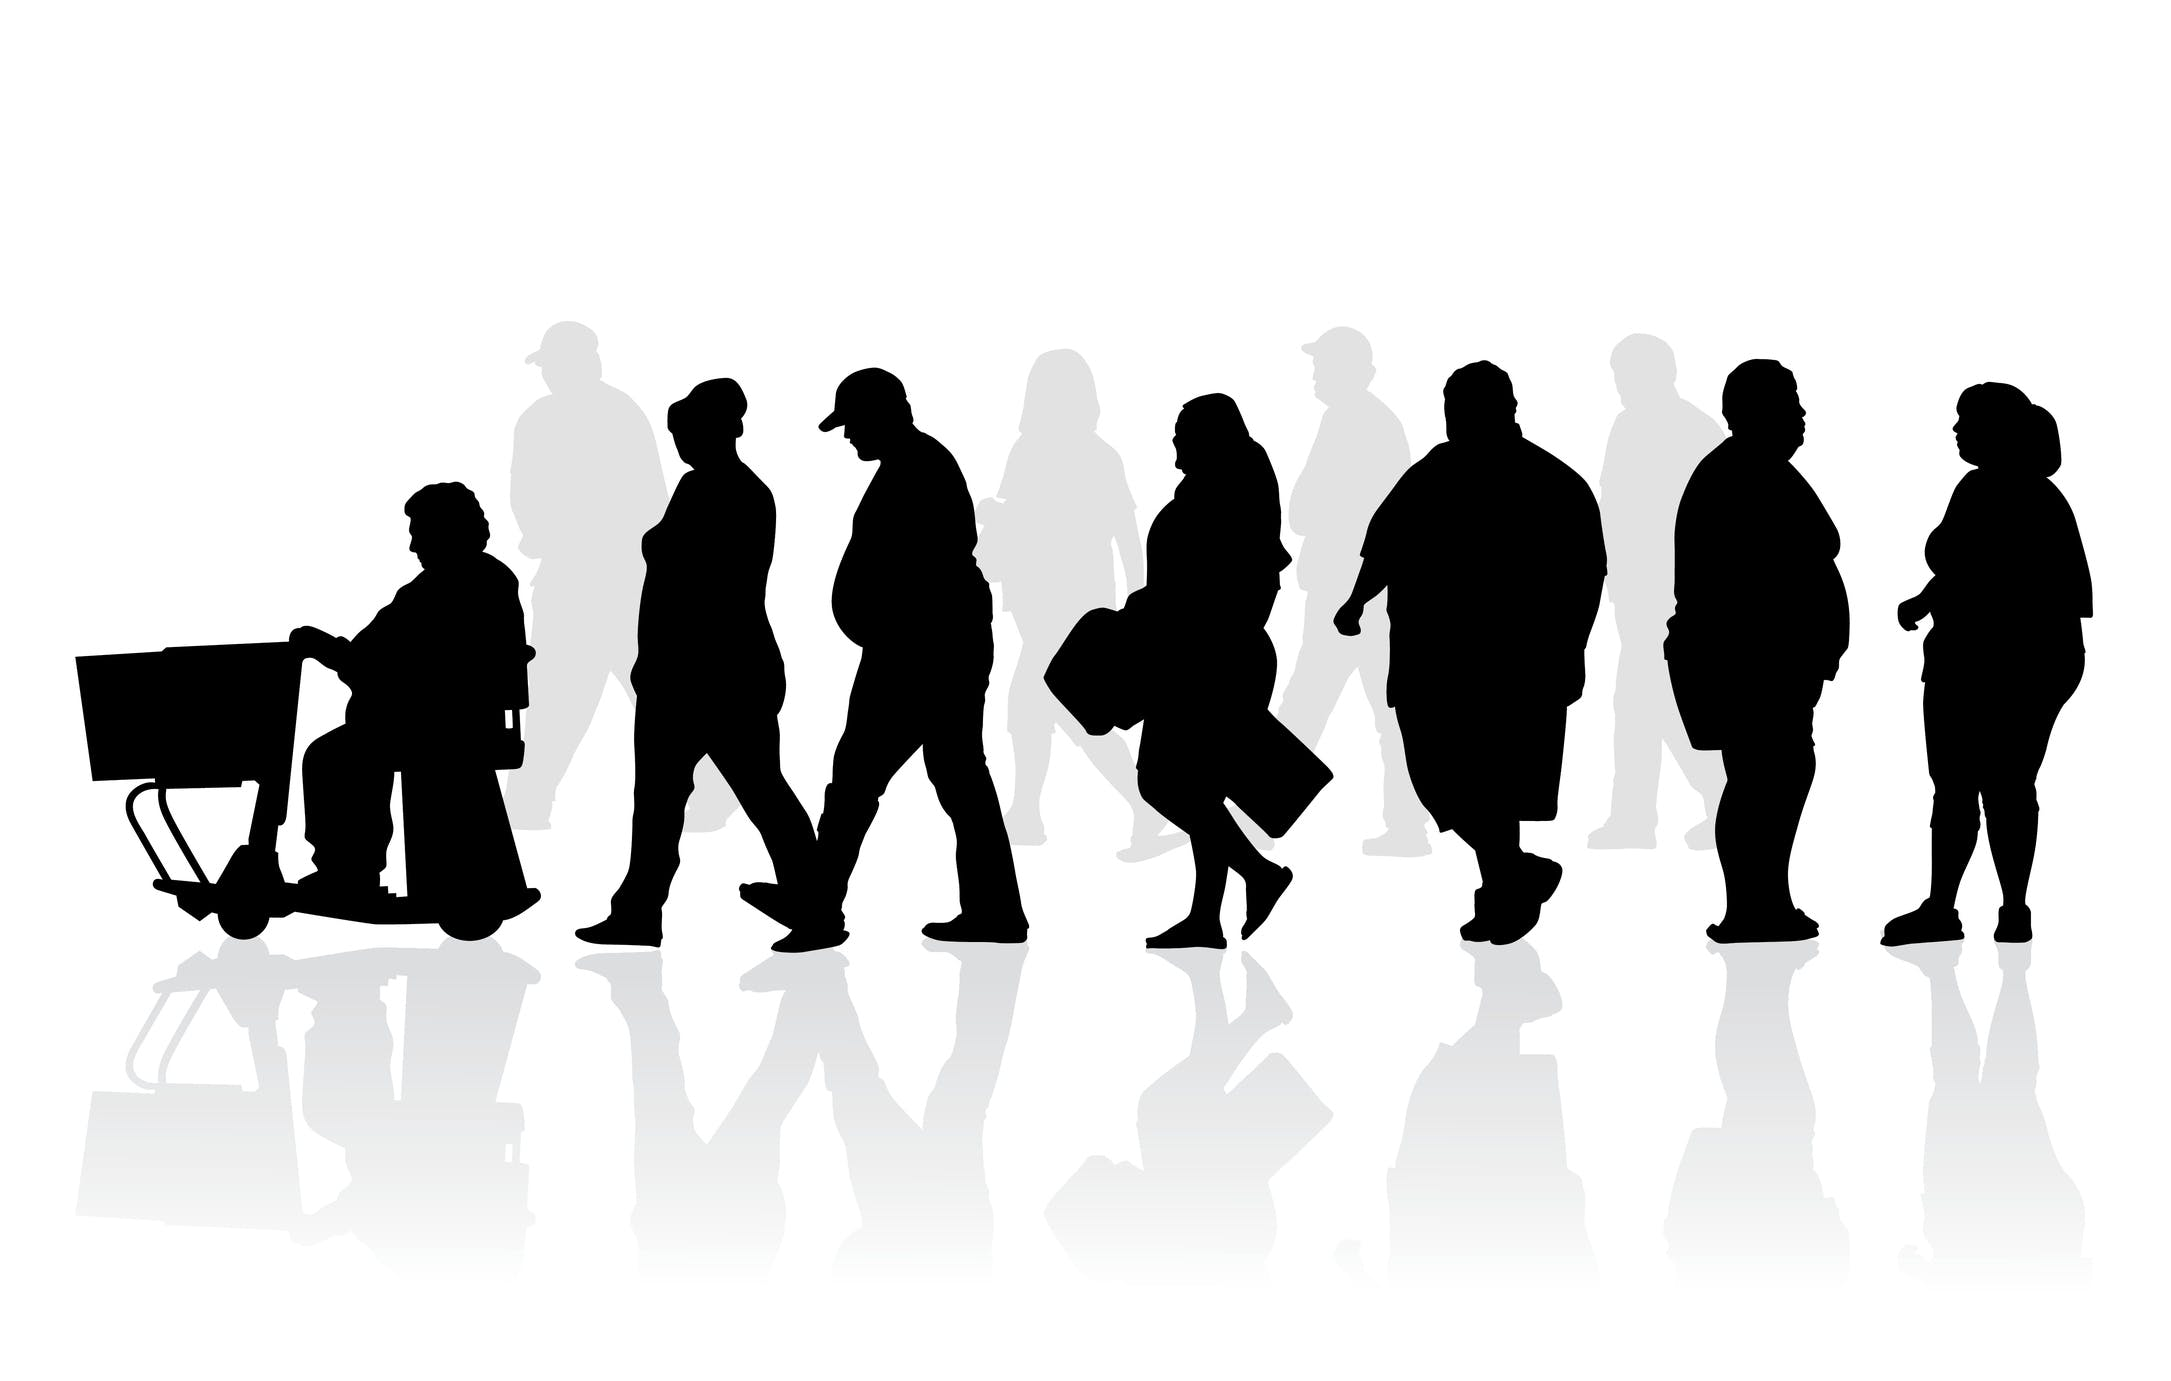 Overweight and obese people silhouette illustration